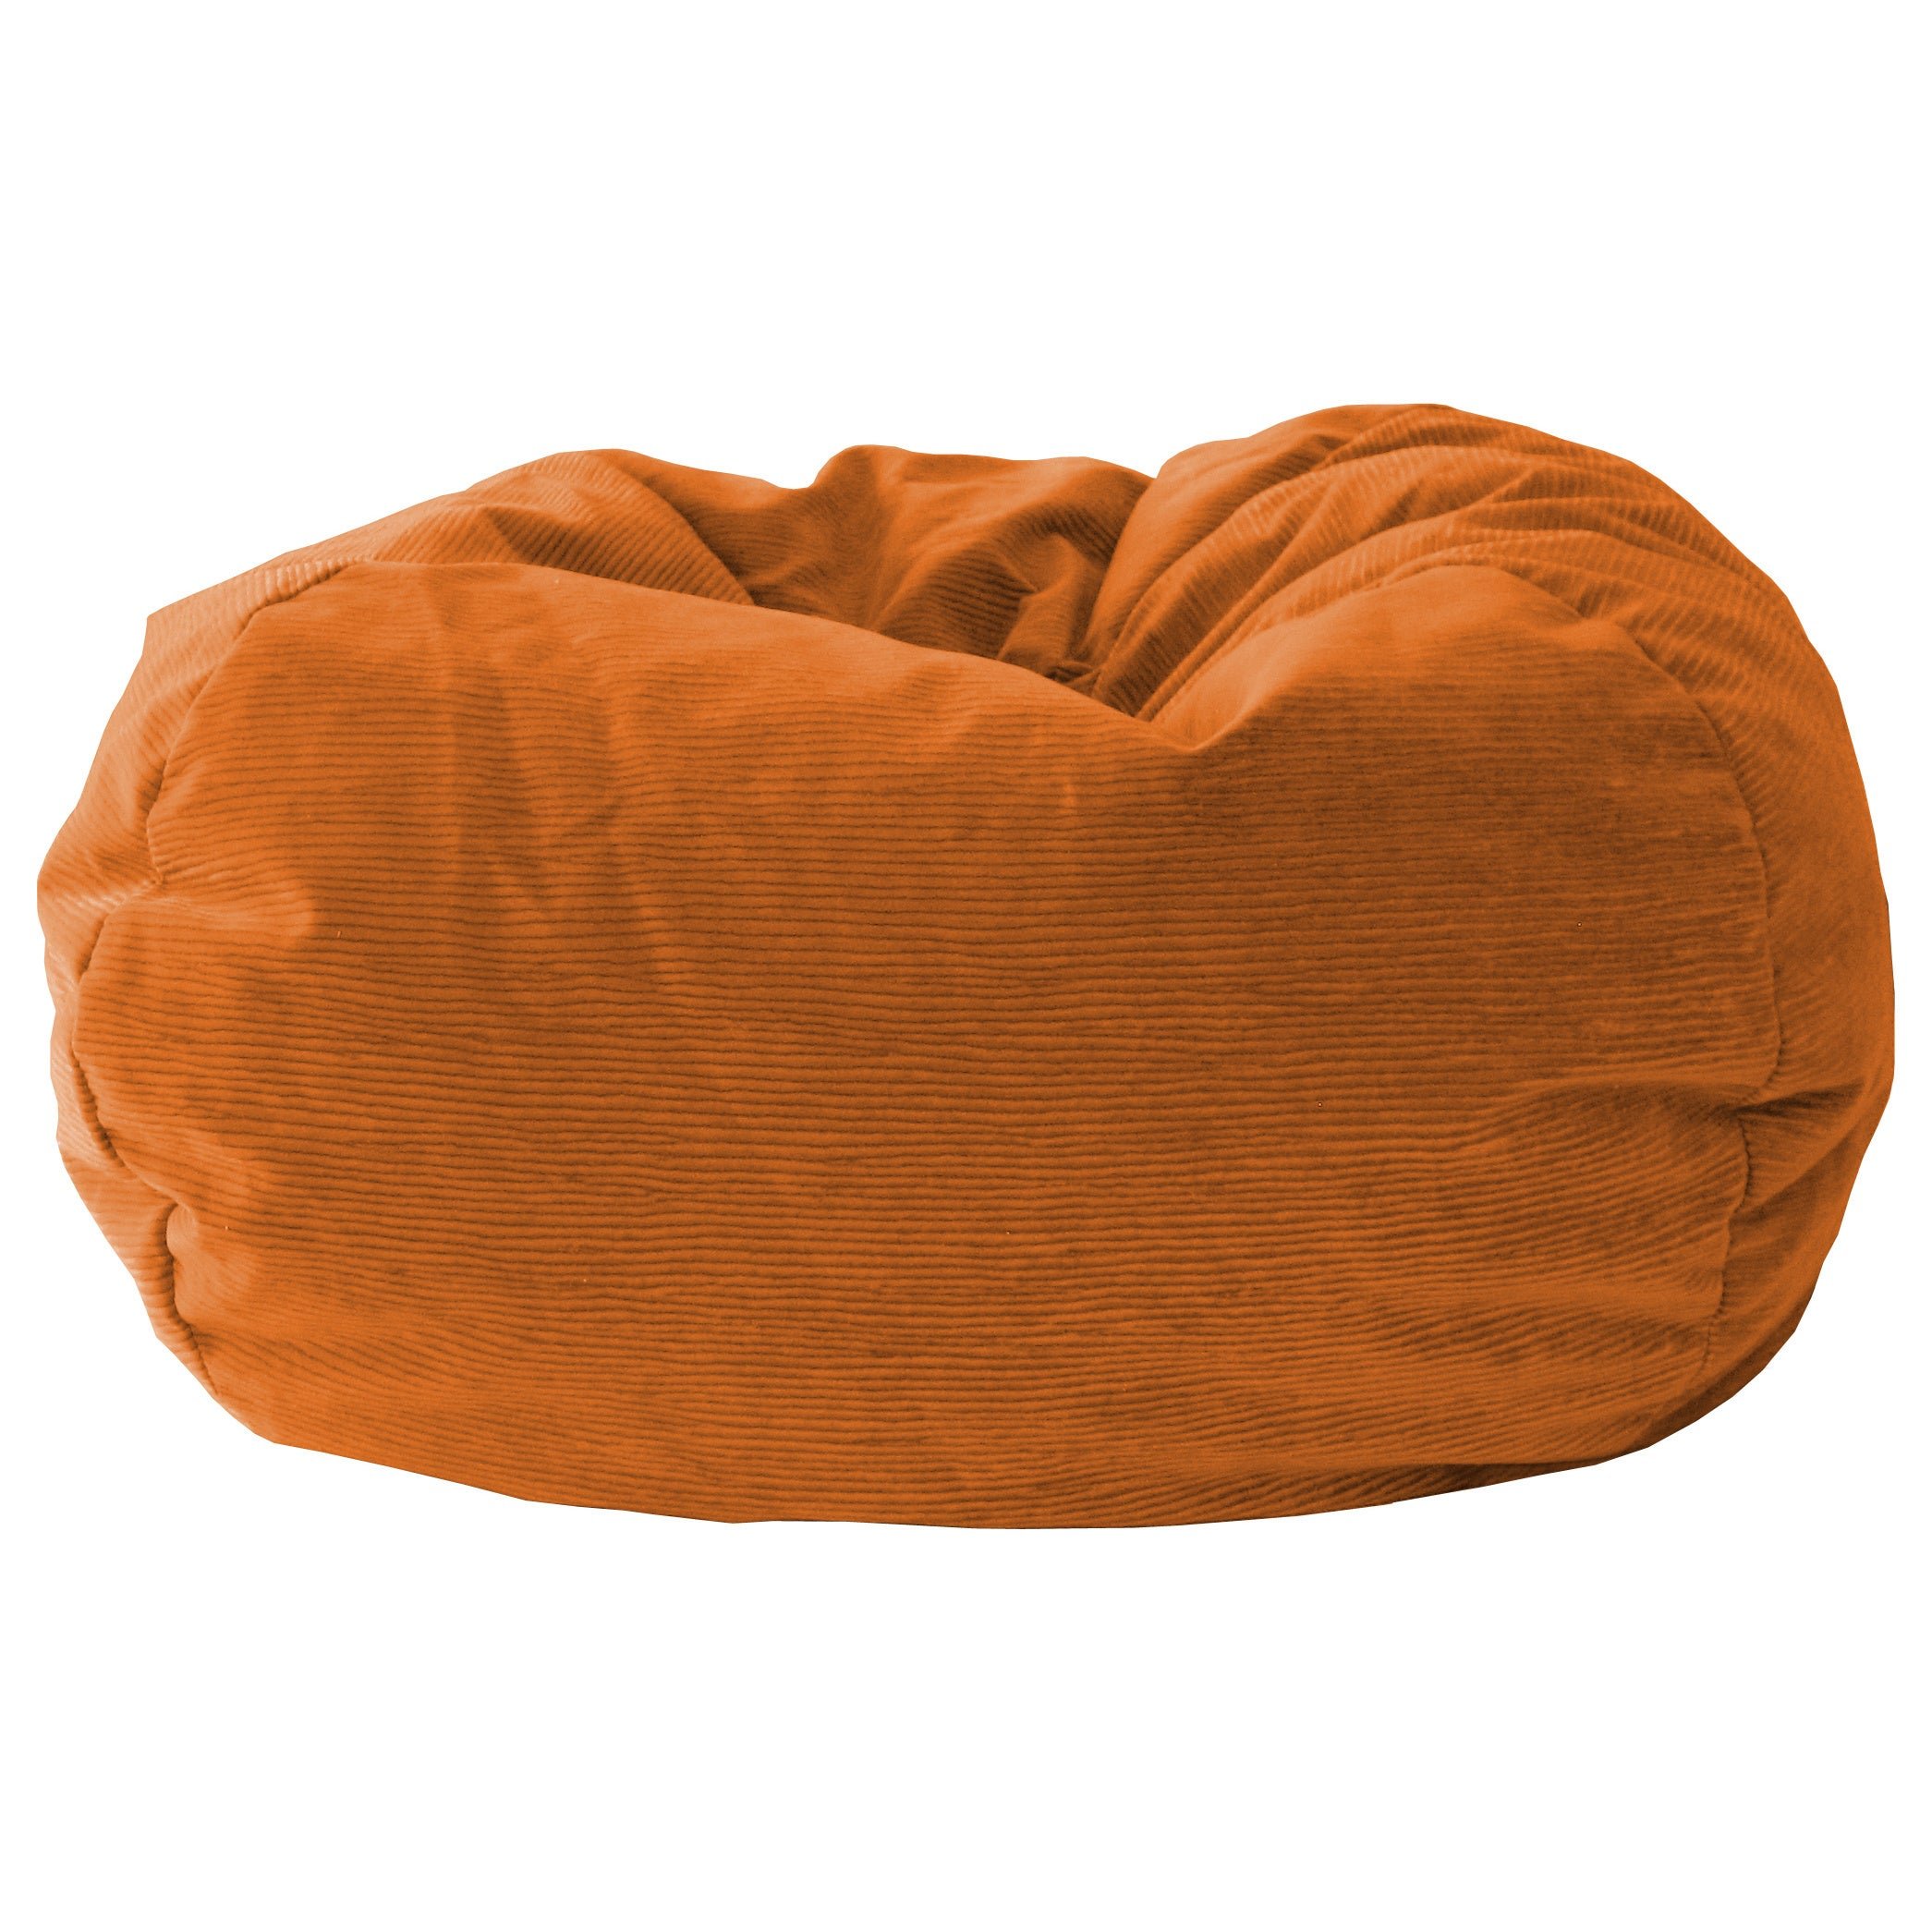 Sensational Gold Medal Bean Bag Microsuede Corduroy Small 105 Harvest Orange Inzonedesignstudio Interior Chair Design Inzonedesignstudiocom